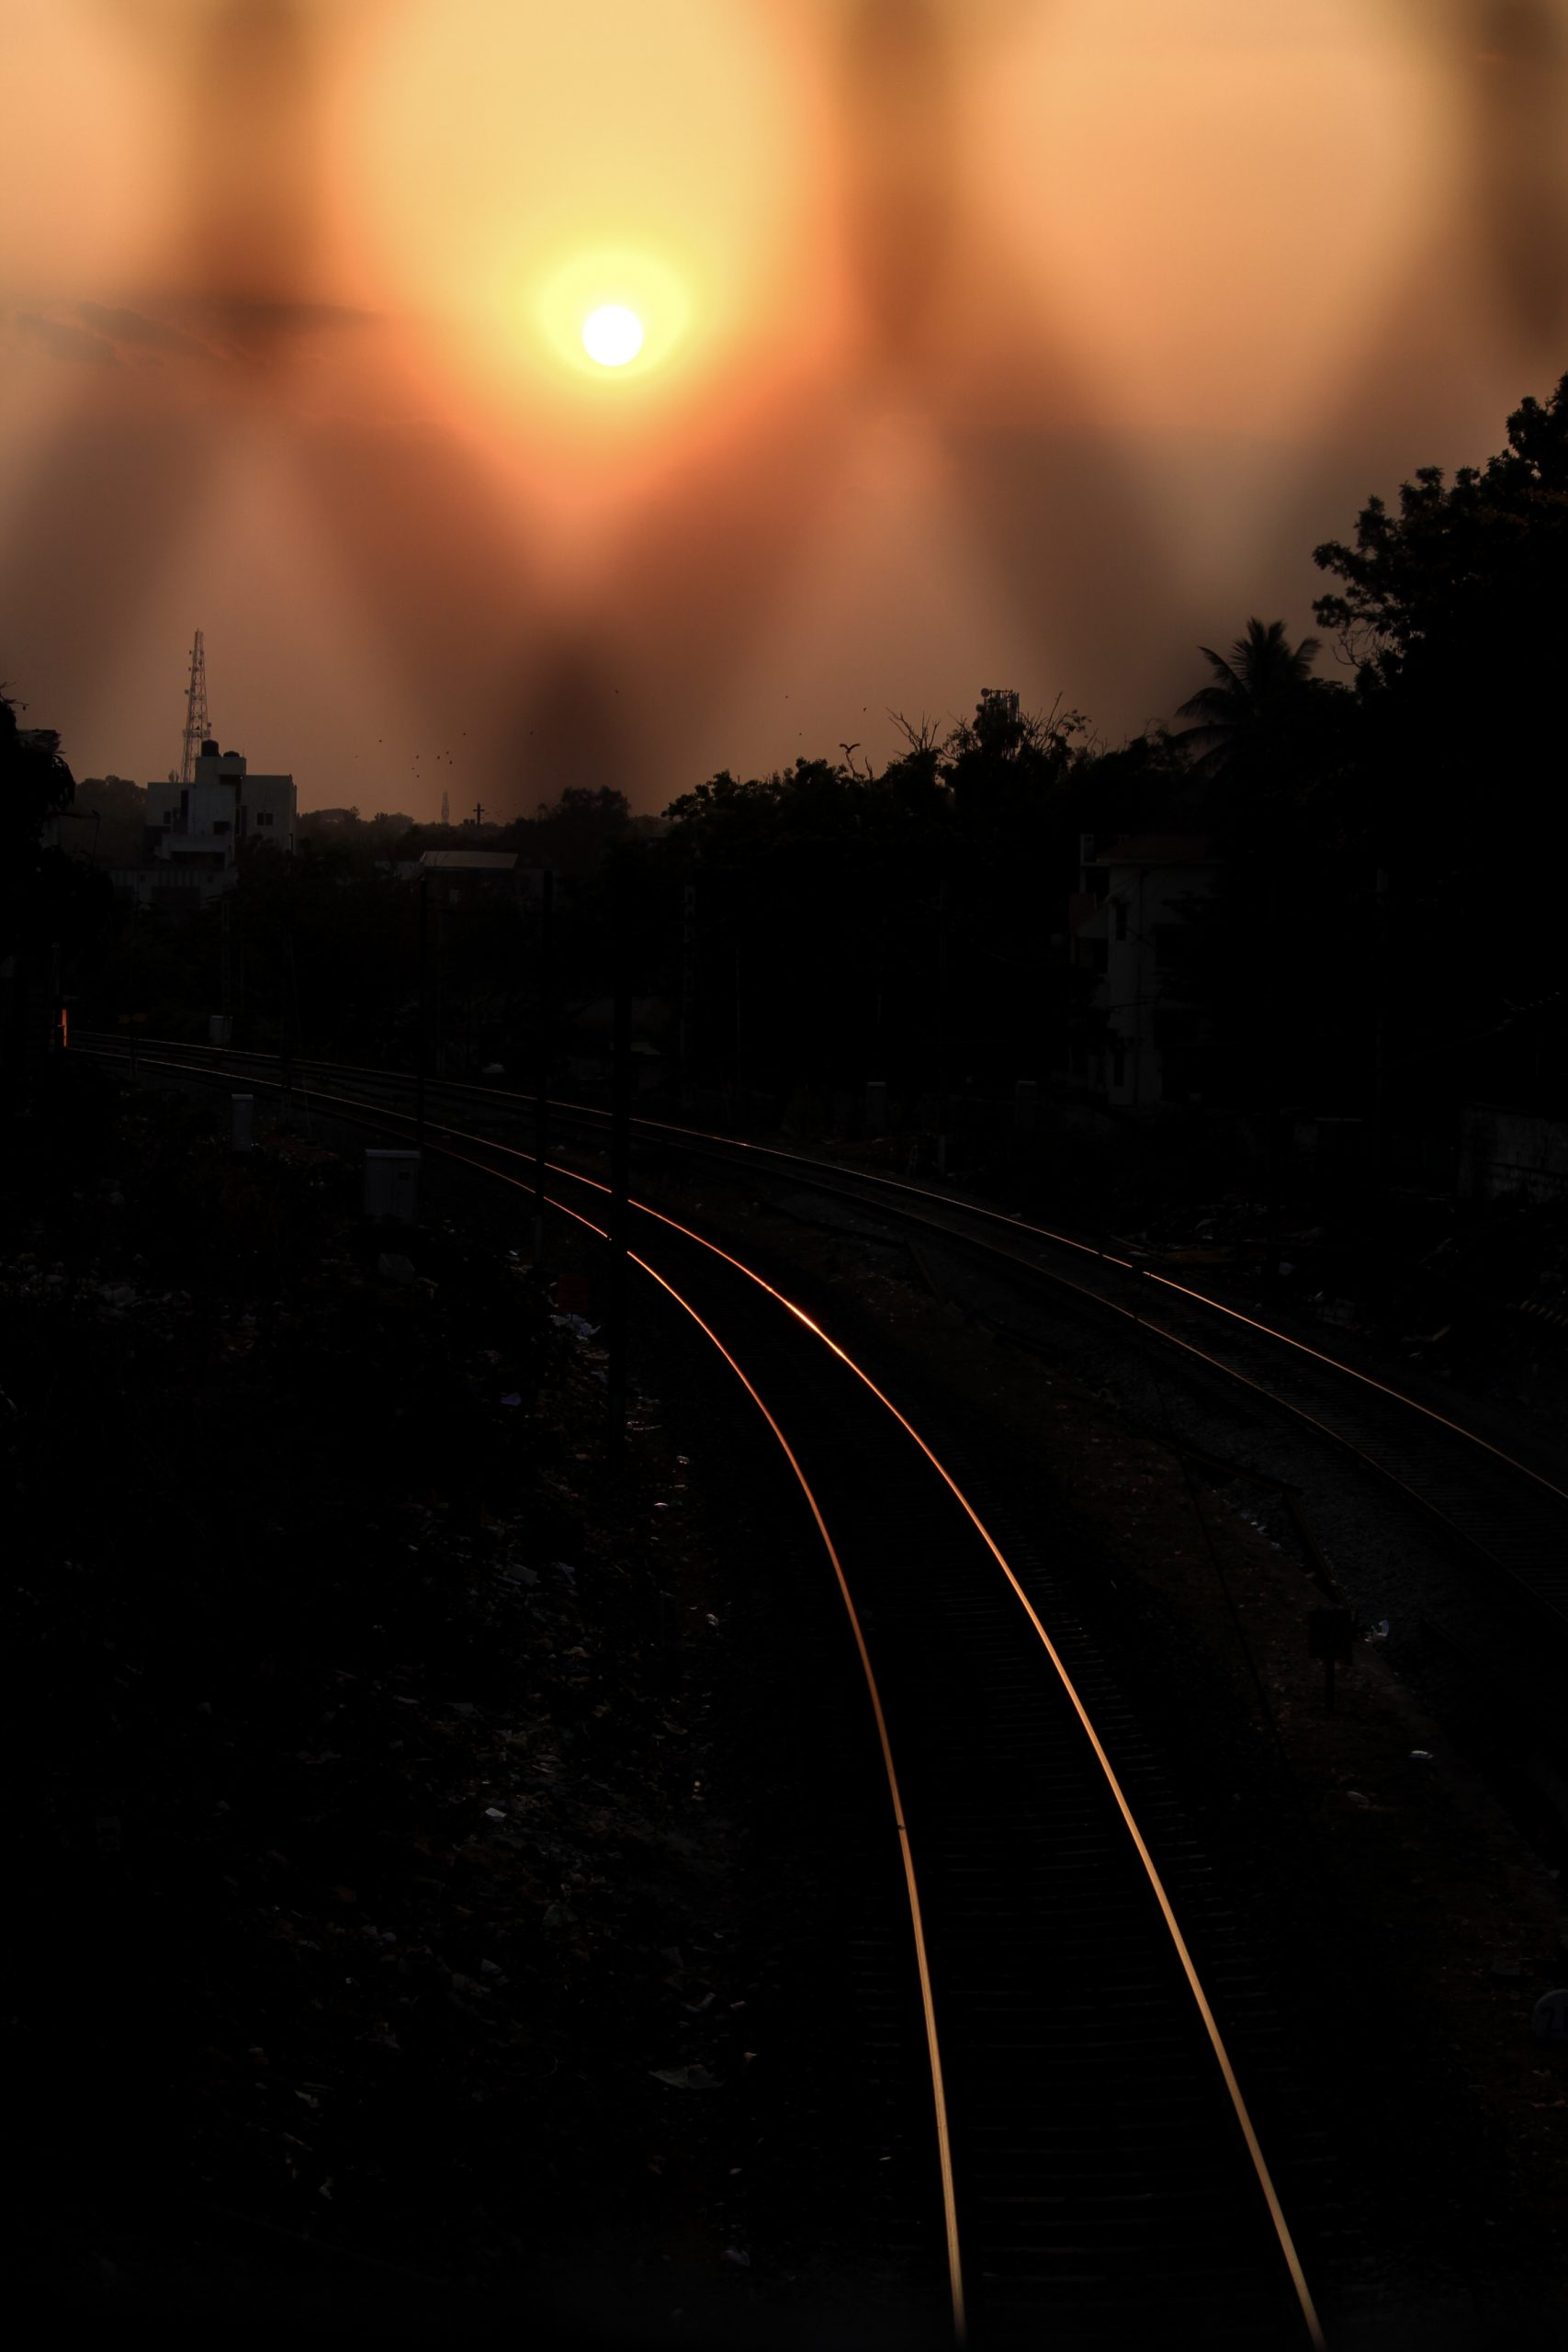 Railway tracks during evening